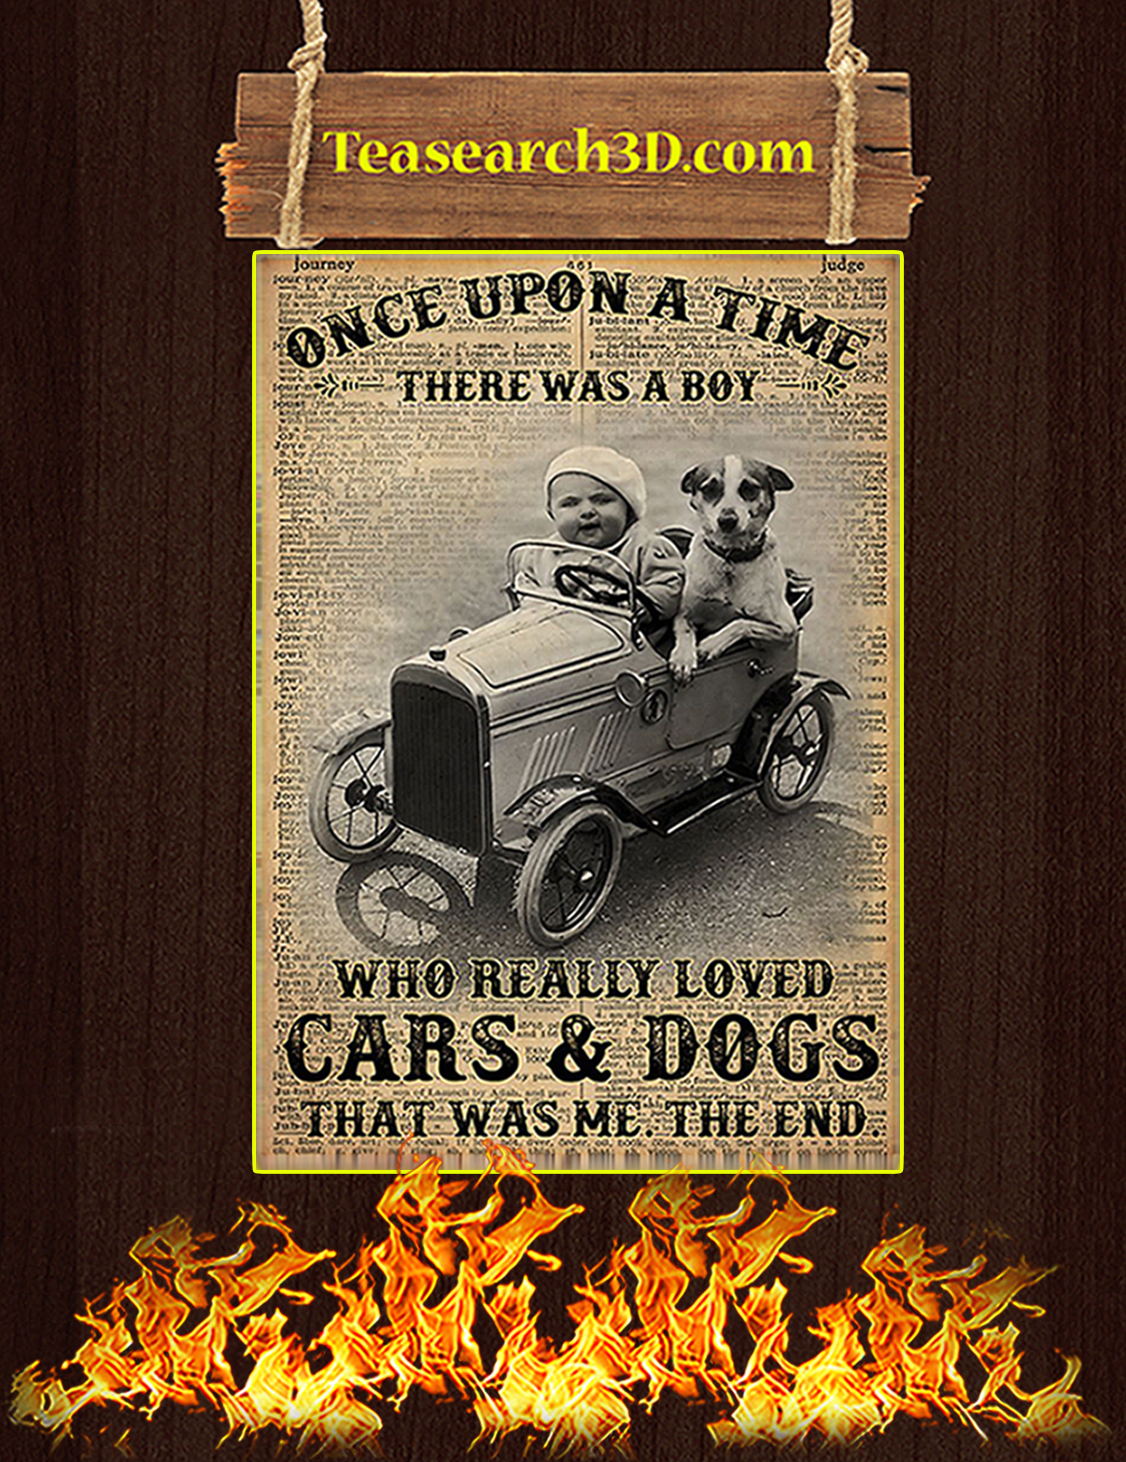 Once upon a time there was a boy who really loved cars and dogs poster A3